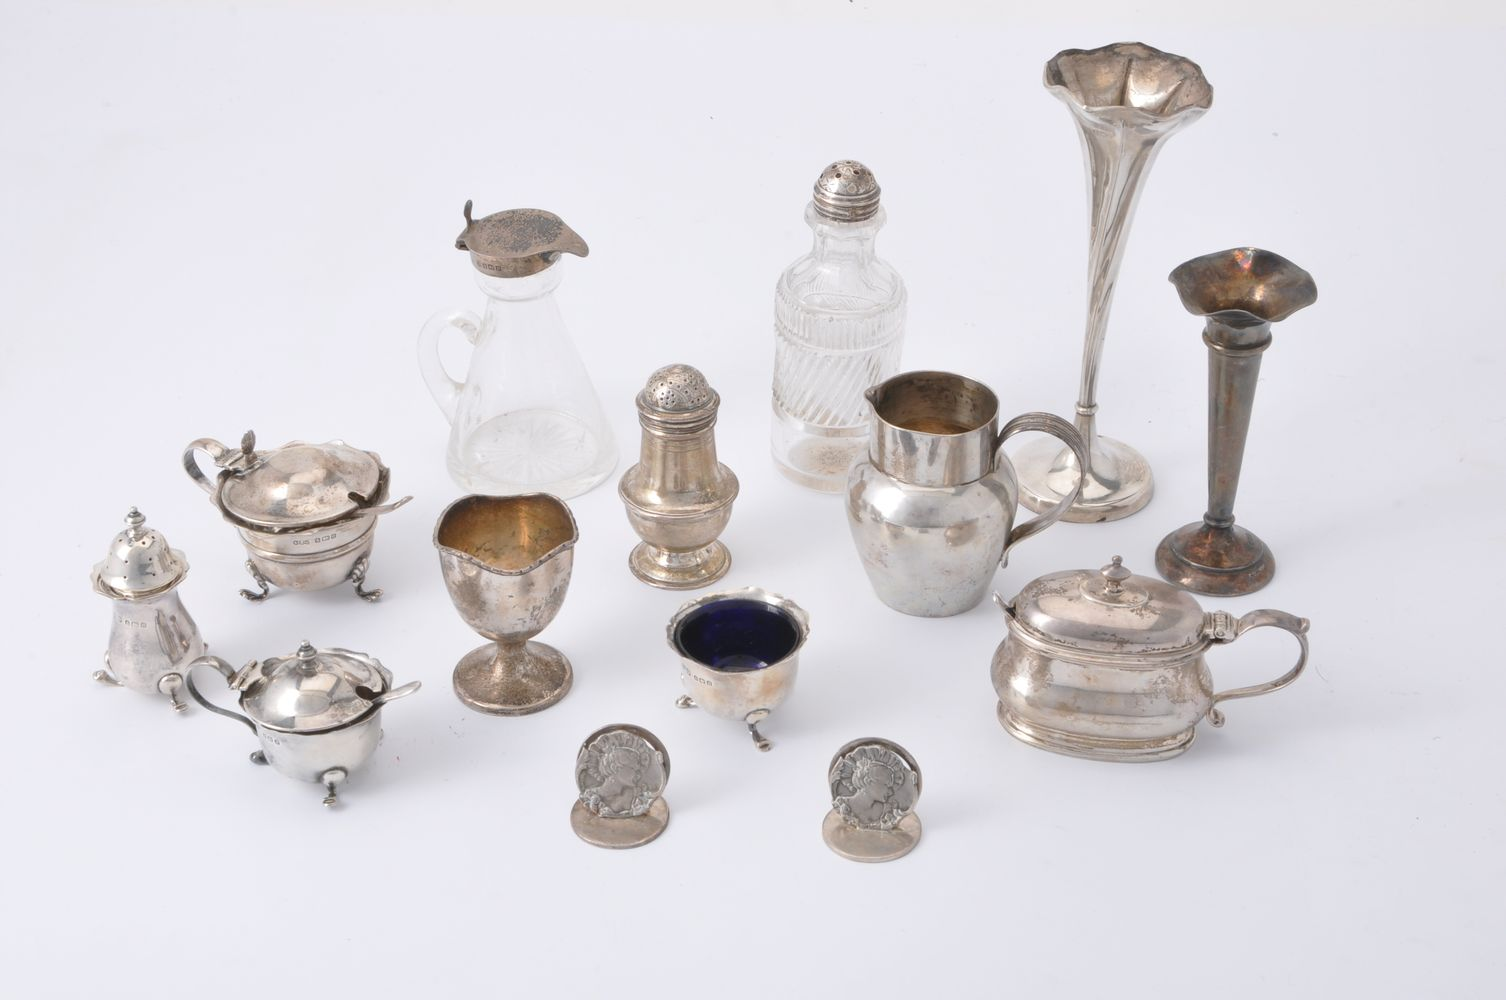 A collection of small silver